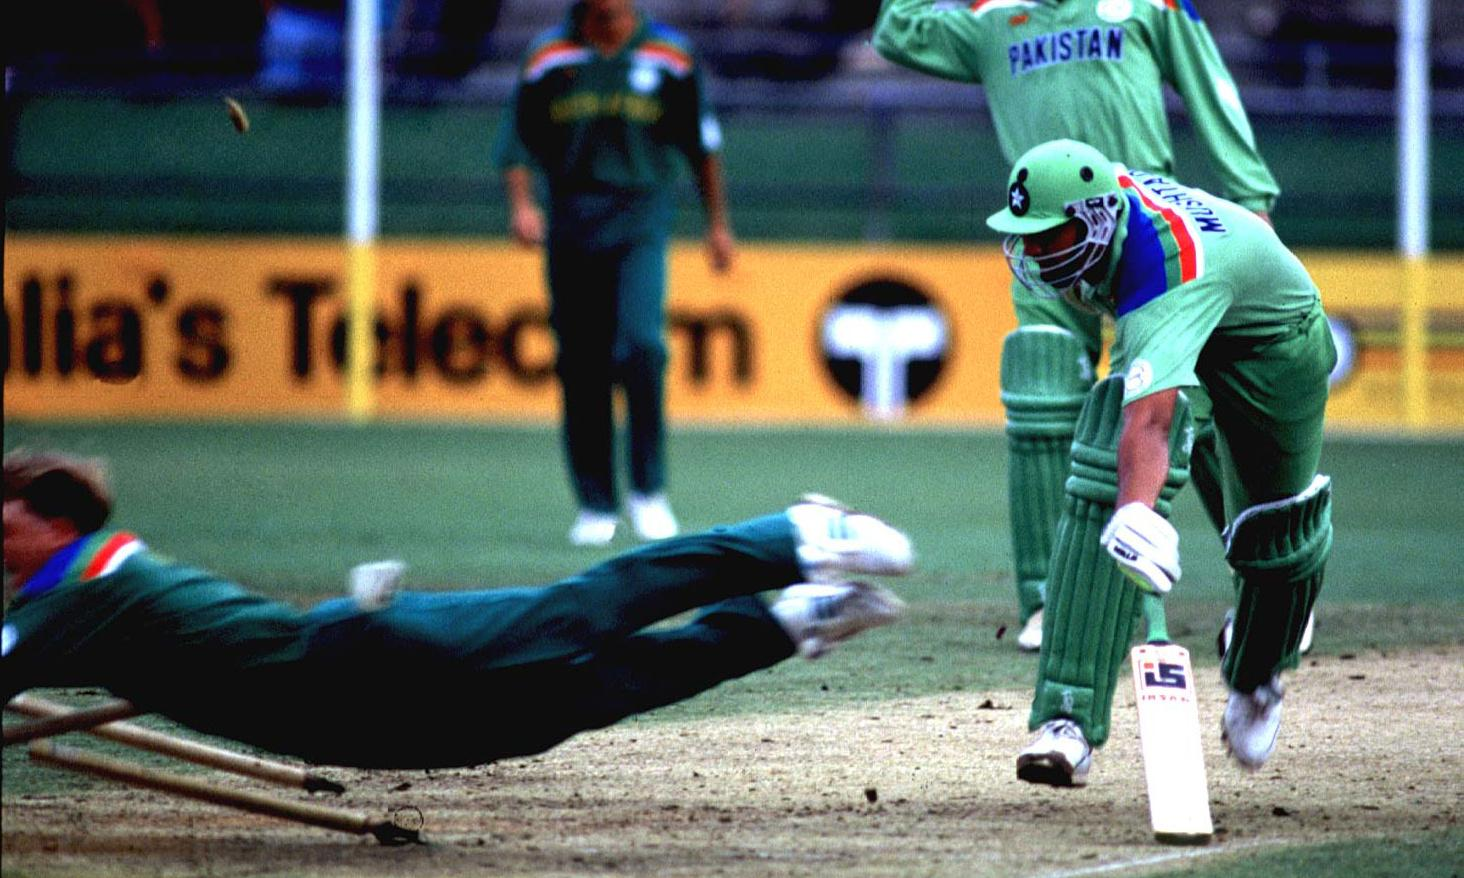 Cricket's Superman, a history of women's football and bad unveilings